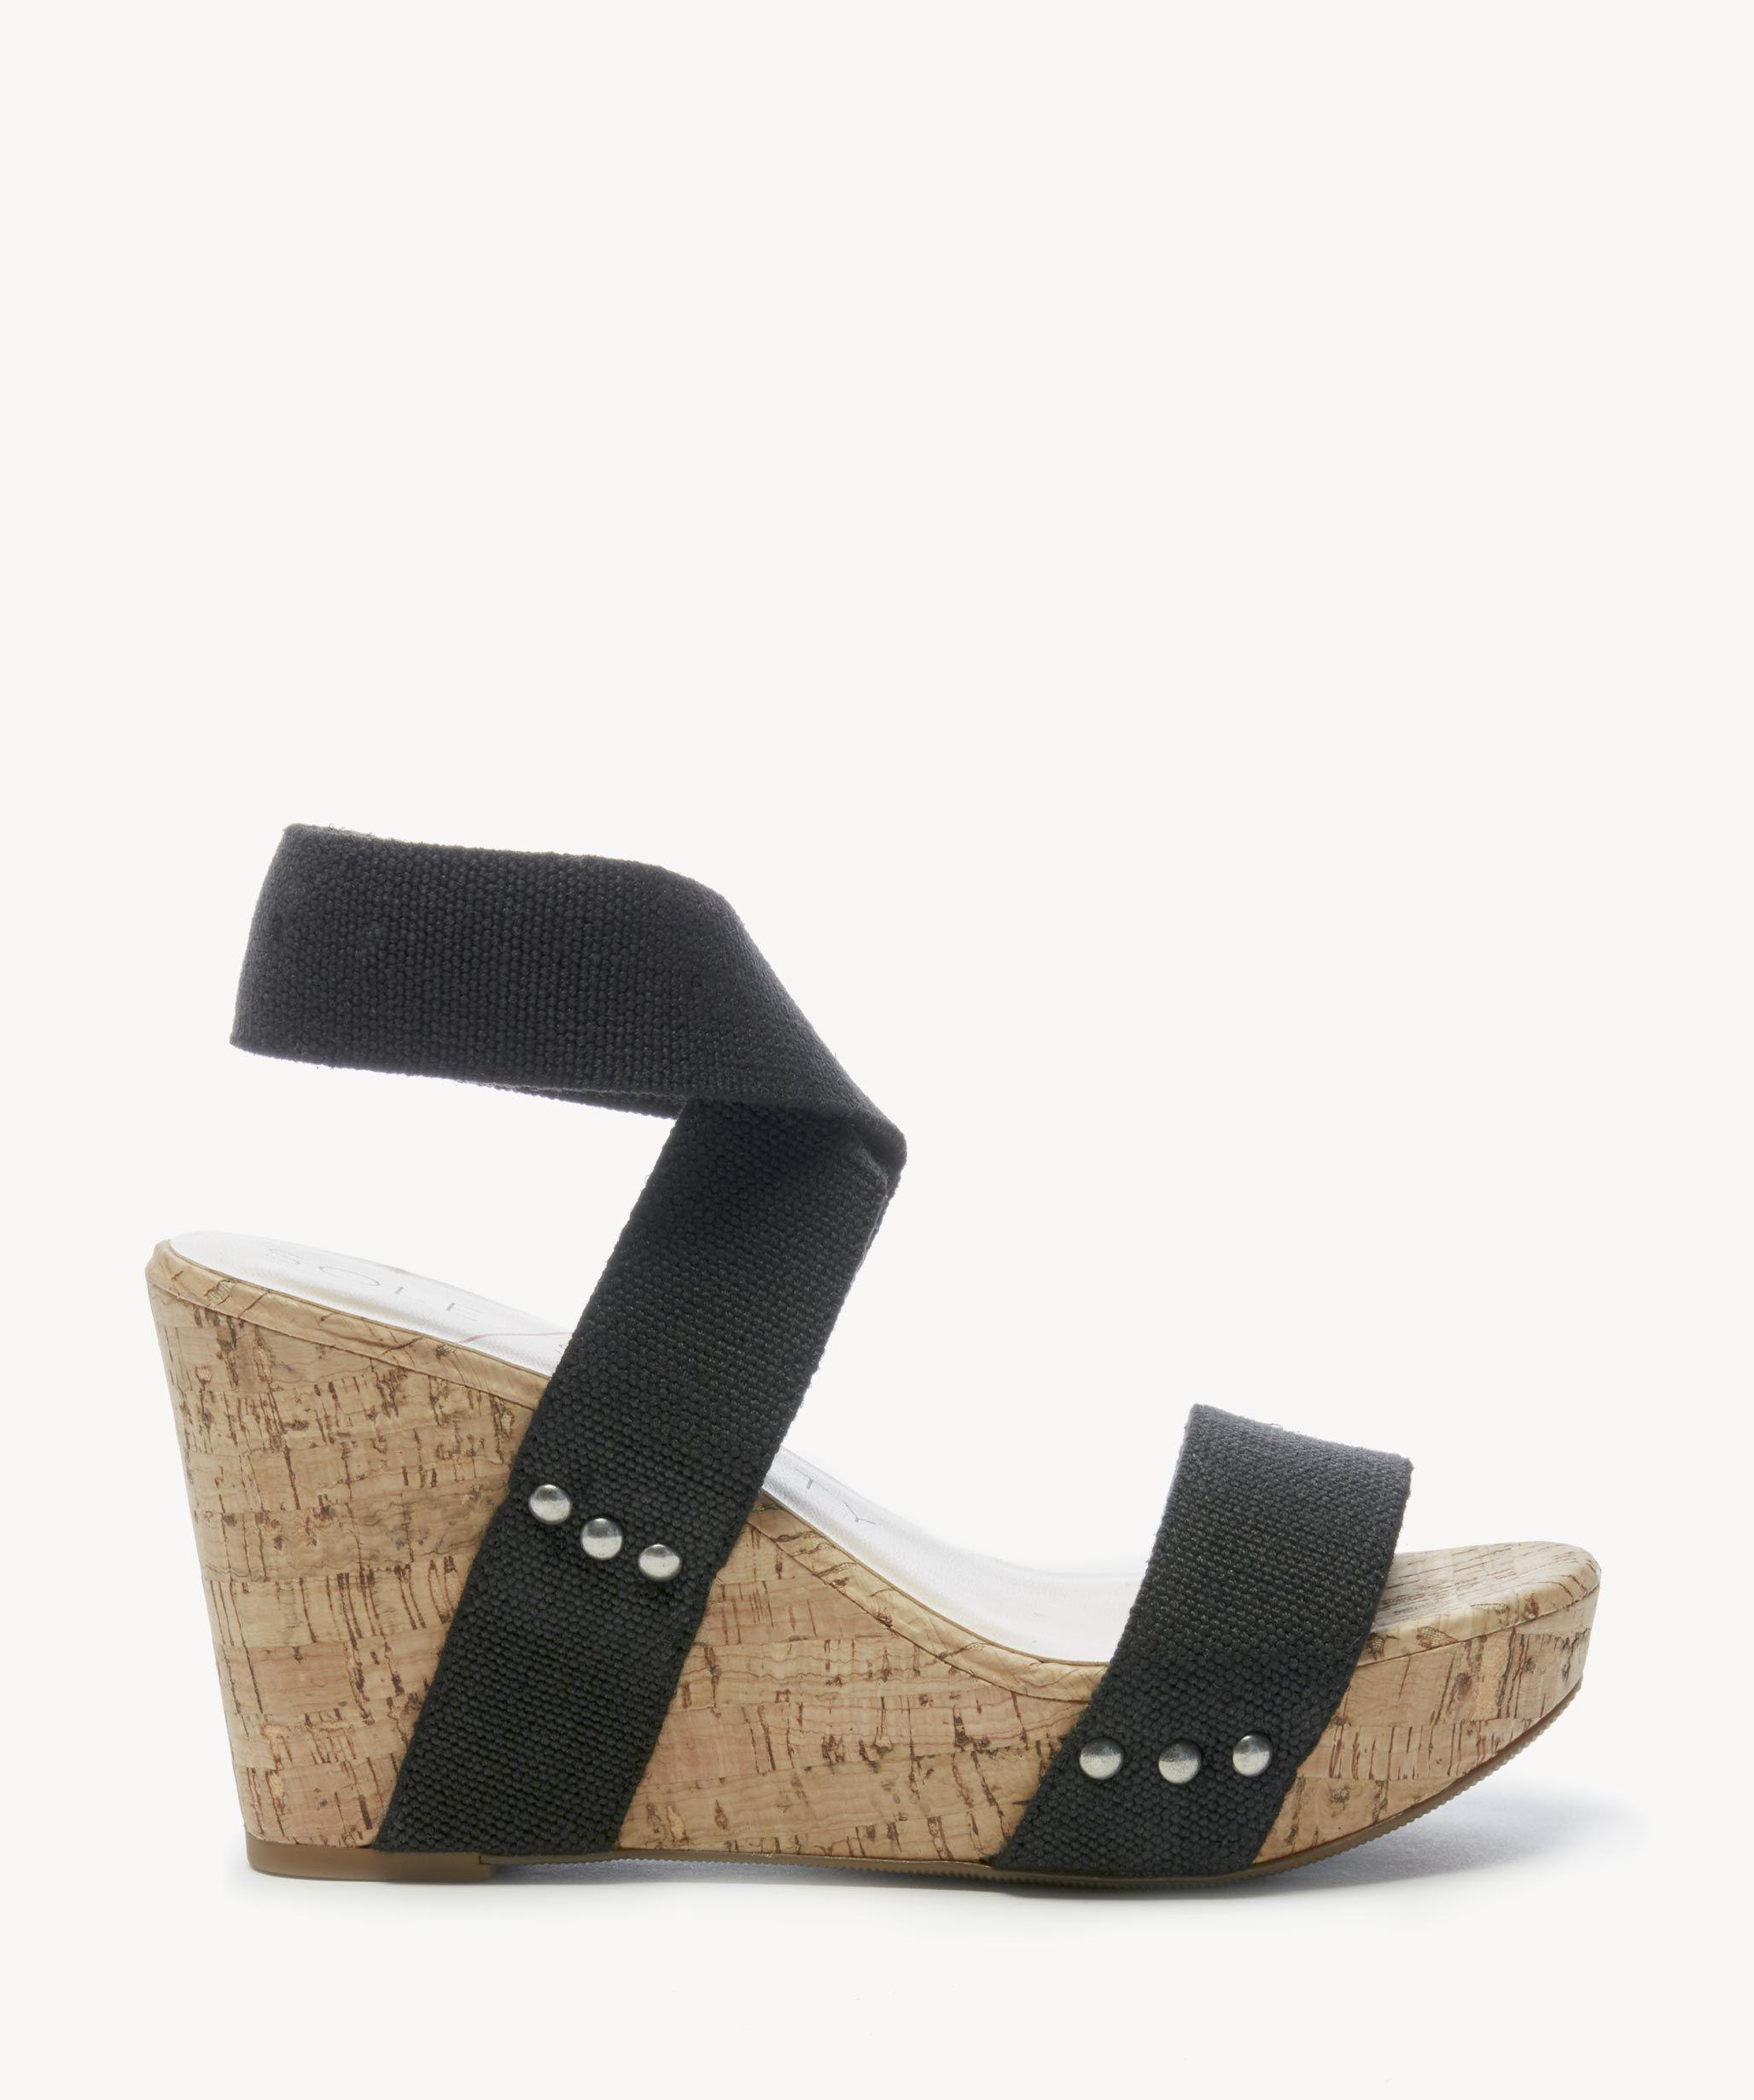 3f566ff0ee1d Sole Society - Black Analisa Platform Wedge - Lyst. View fullscreen